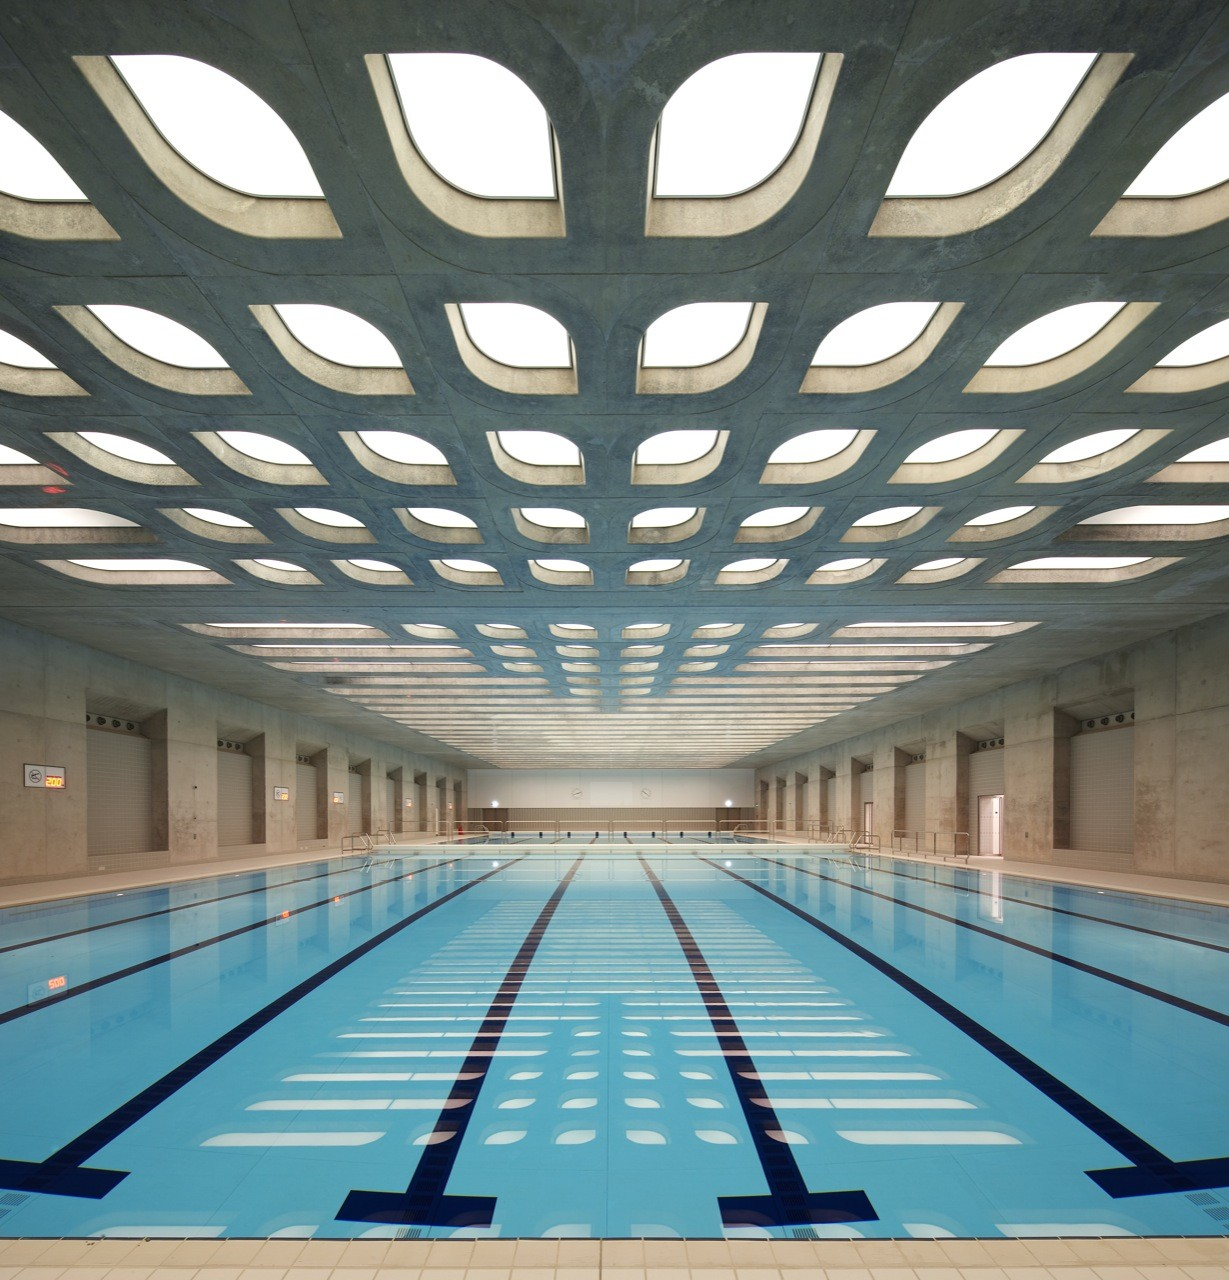 London Aquatics Centre For 2012 Summer Olympics Zaha Hadid Architects Archdaily